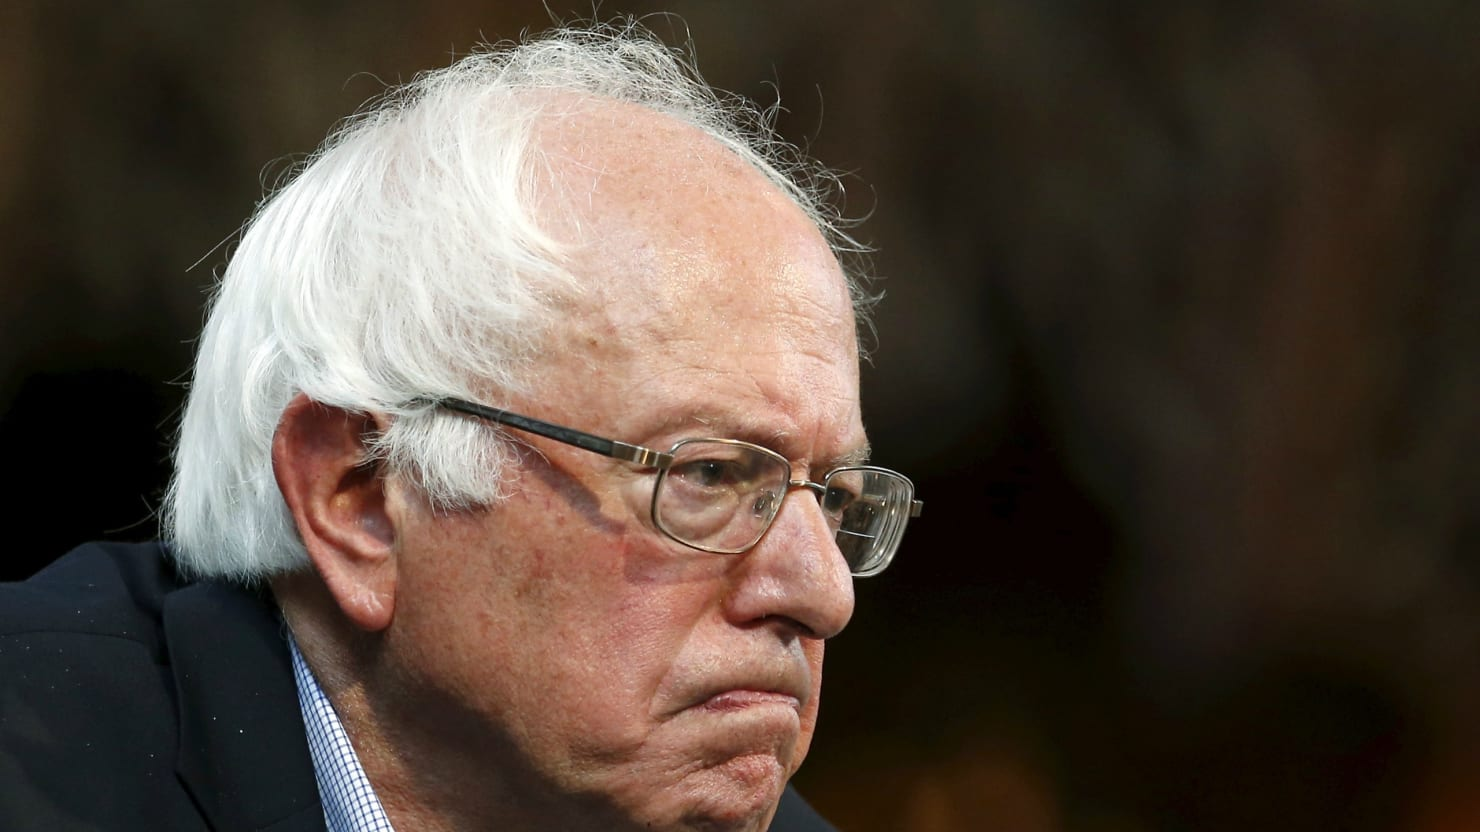 Sanders Wants New NATO with Russia